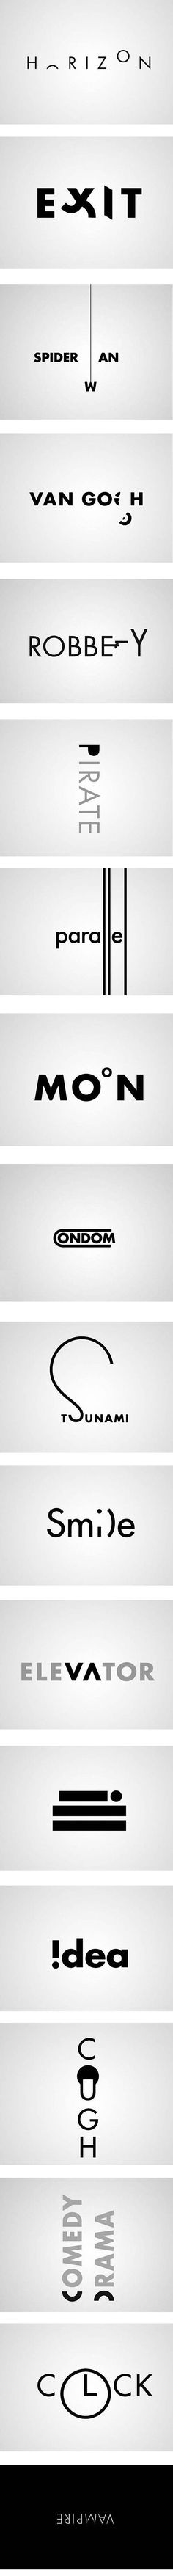 #typography #logo #design